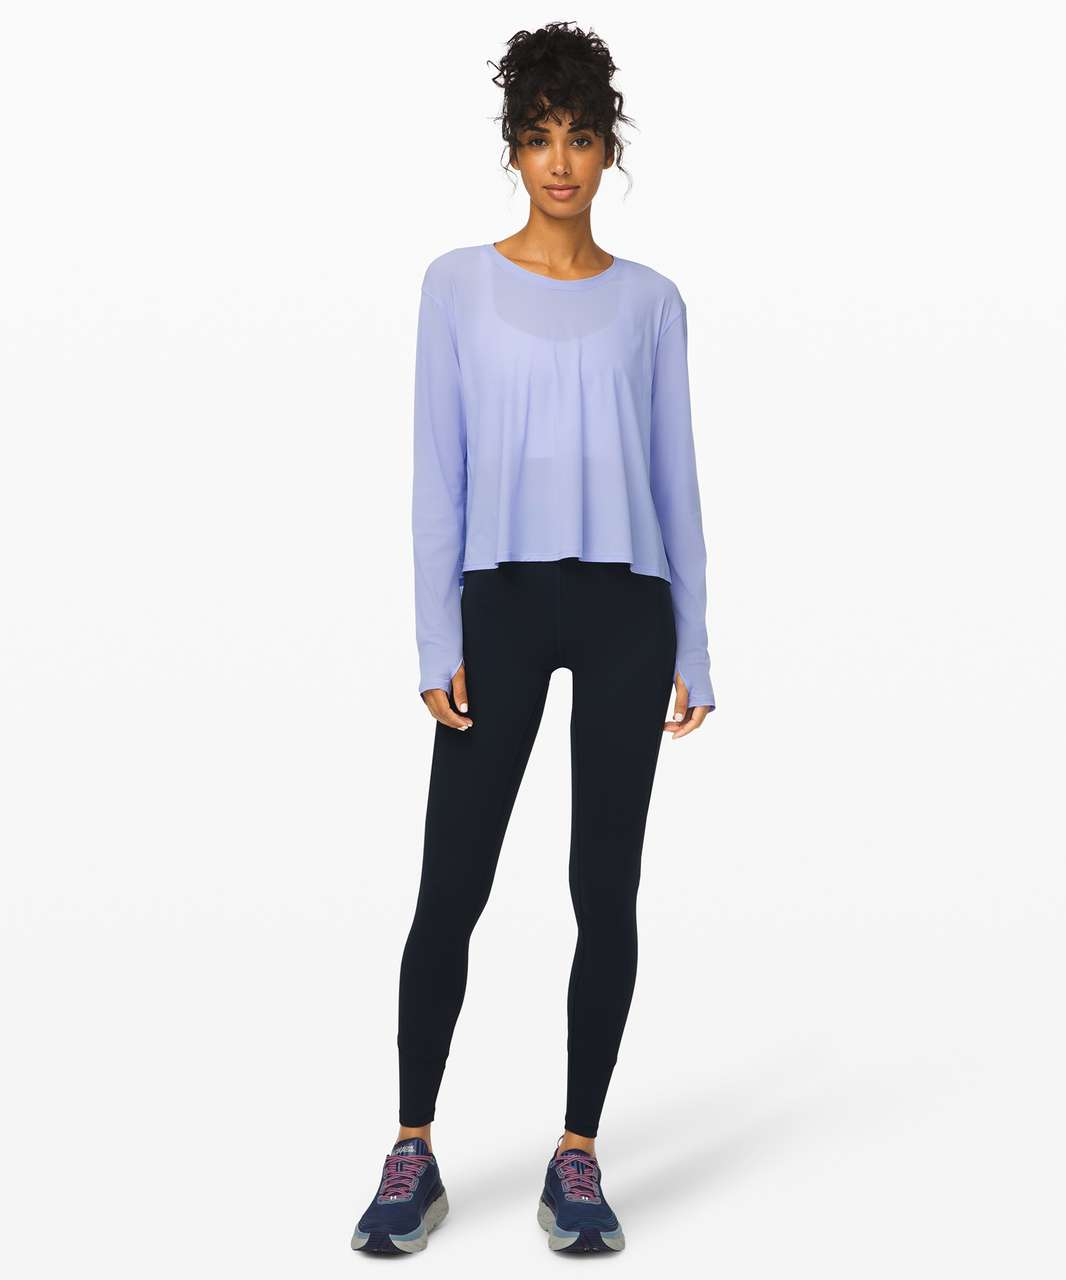 Lululemon No Inhibitions Long Sleeve - Lavender